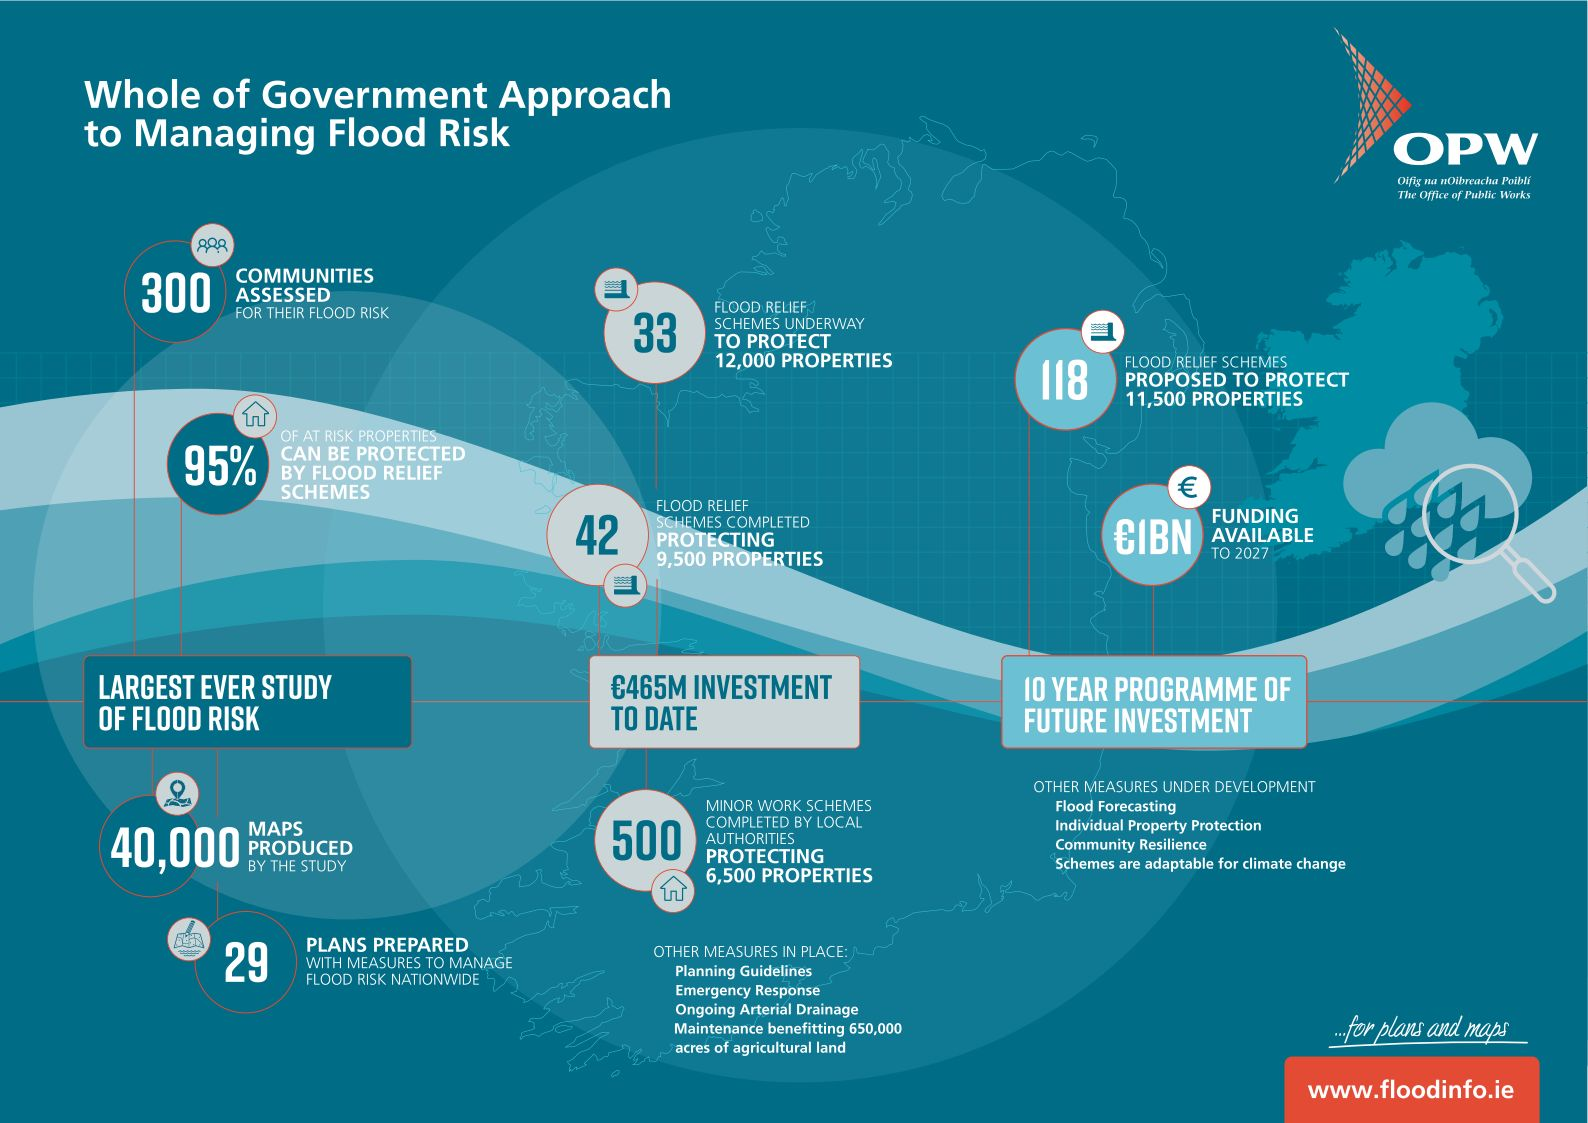 Whole of Government Approach to Managing Flood Risk